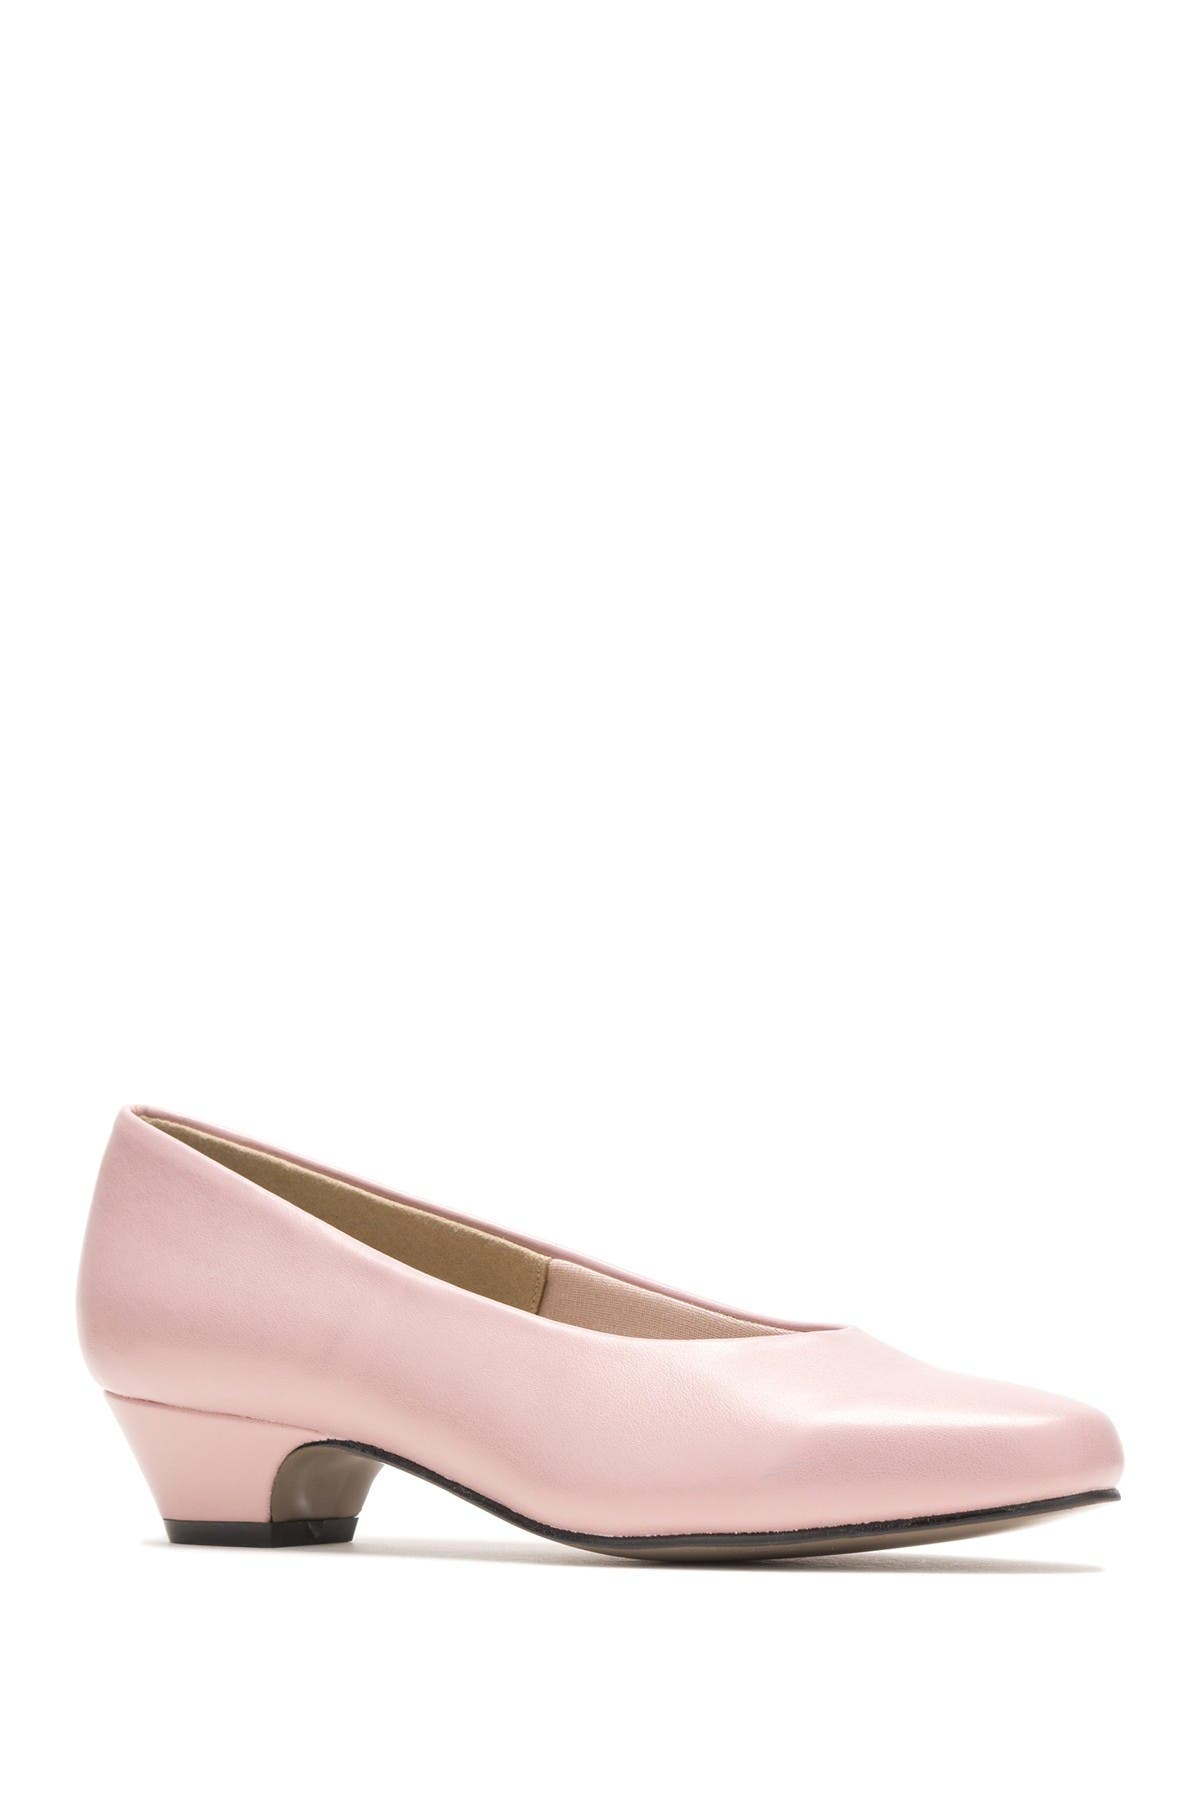 Image of Hush Puppies Angel II Tapered Kitten Heel Pump - Multiple Widths Available